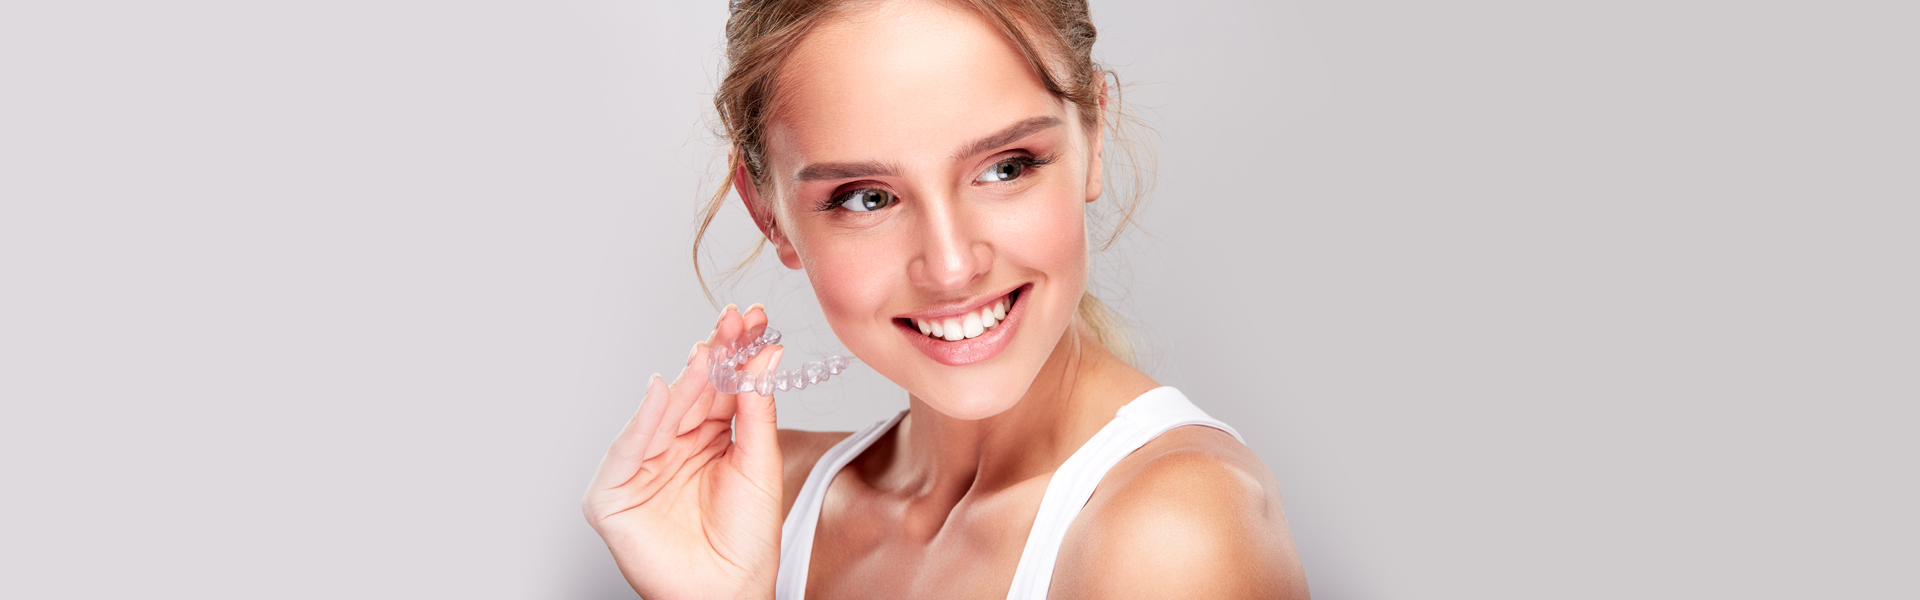 What to Expect for a Teeth Whitening Procedure